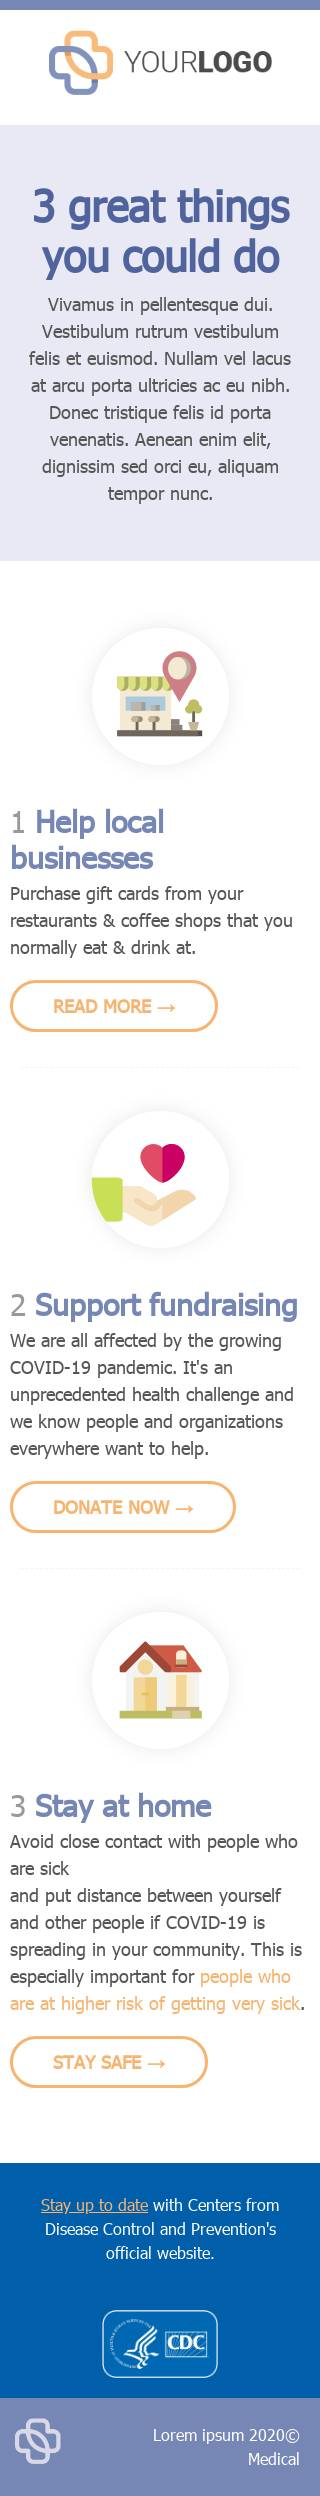 Support fundraising email template